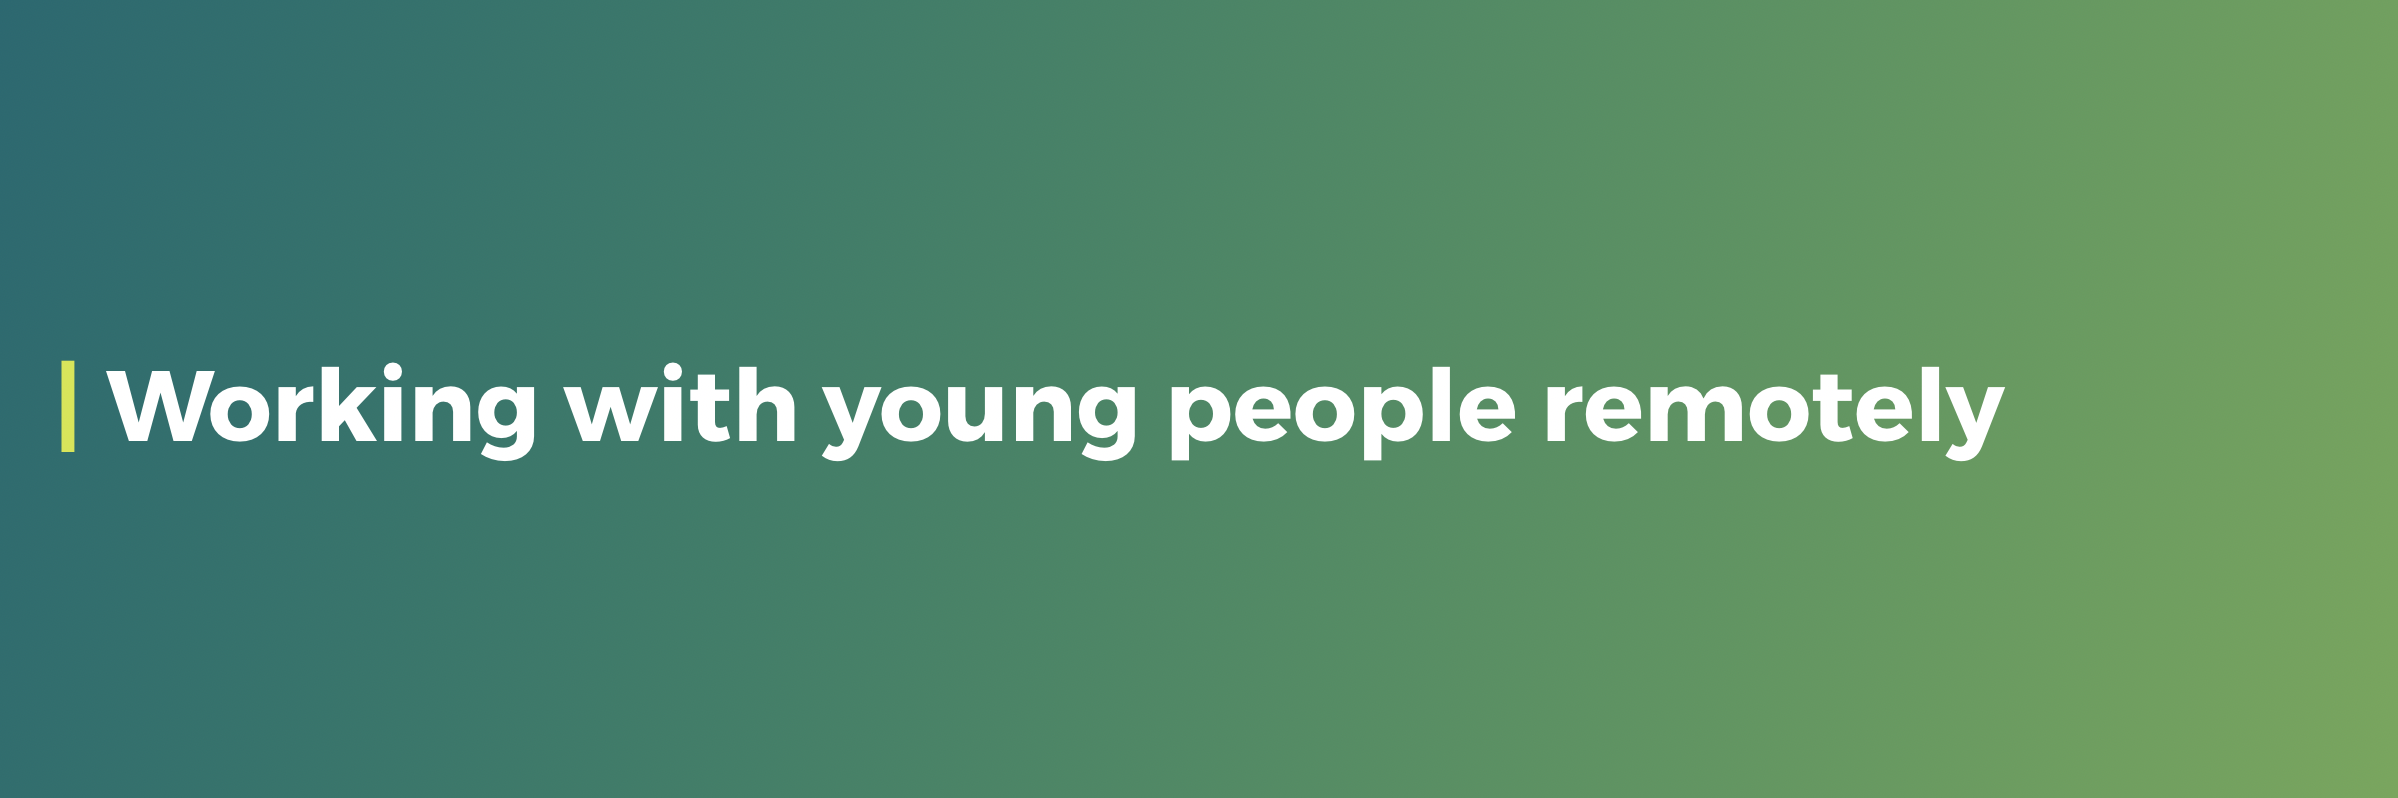 working with young people remotely